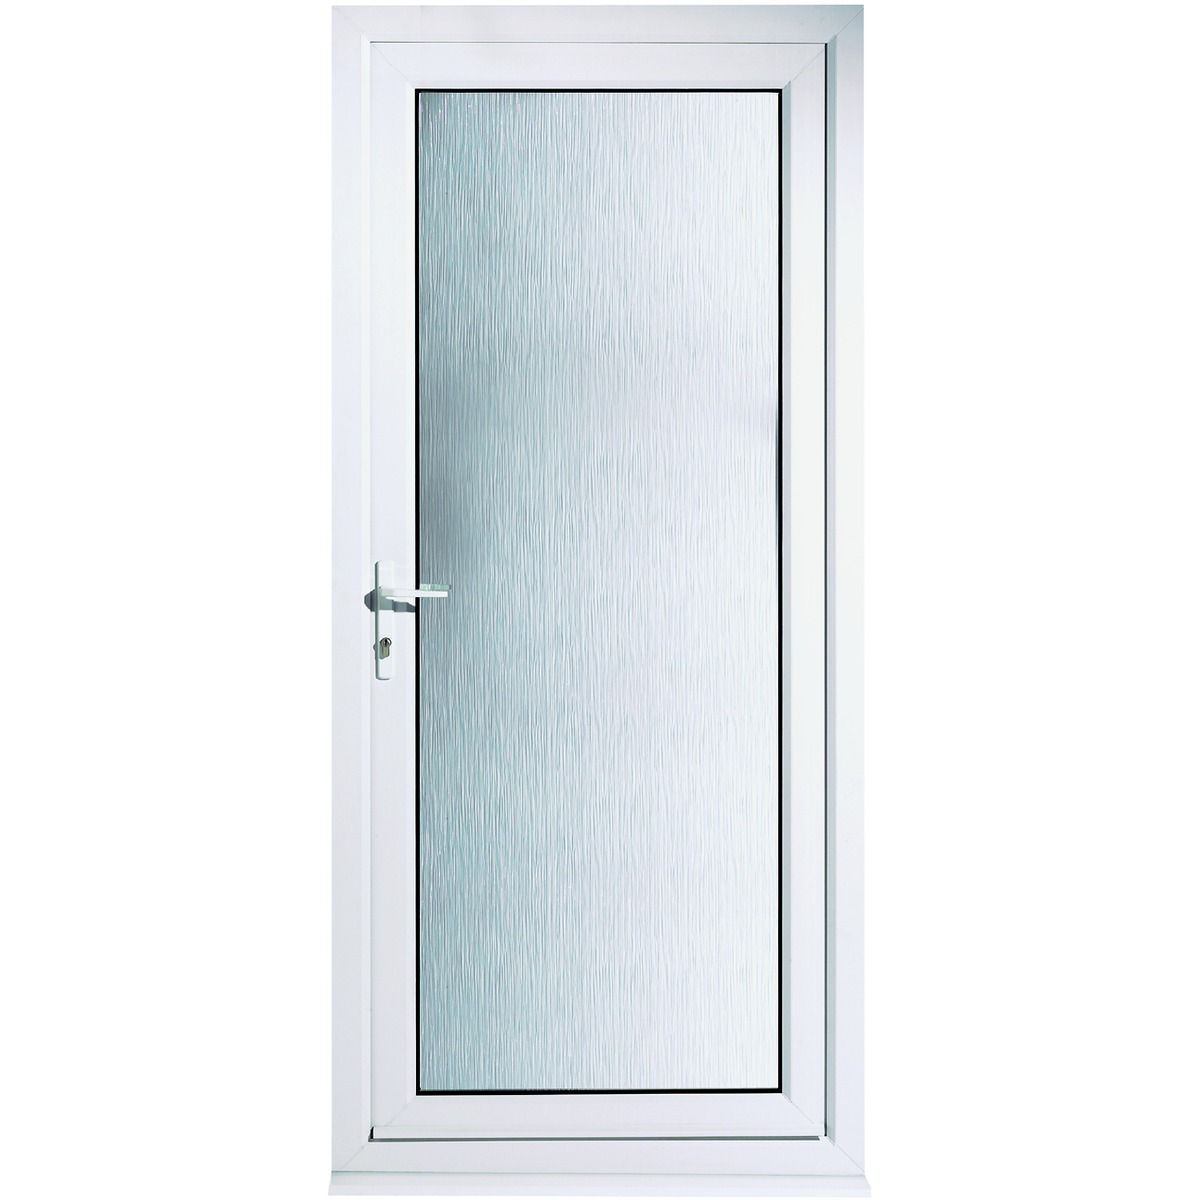 Wickes Humber Pre Hung Upvc Door 2085 X 840mm Right Hand Hung | Wickes.co.uk